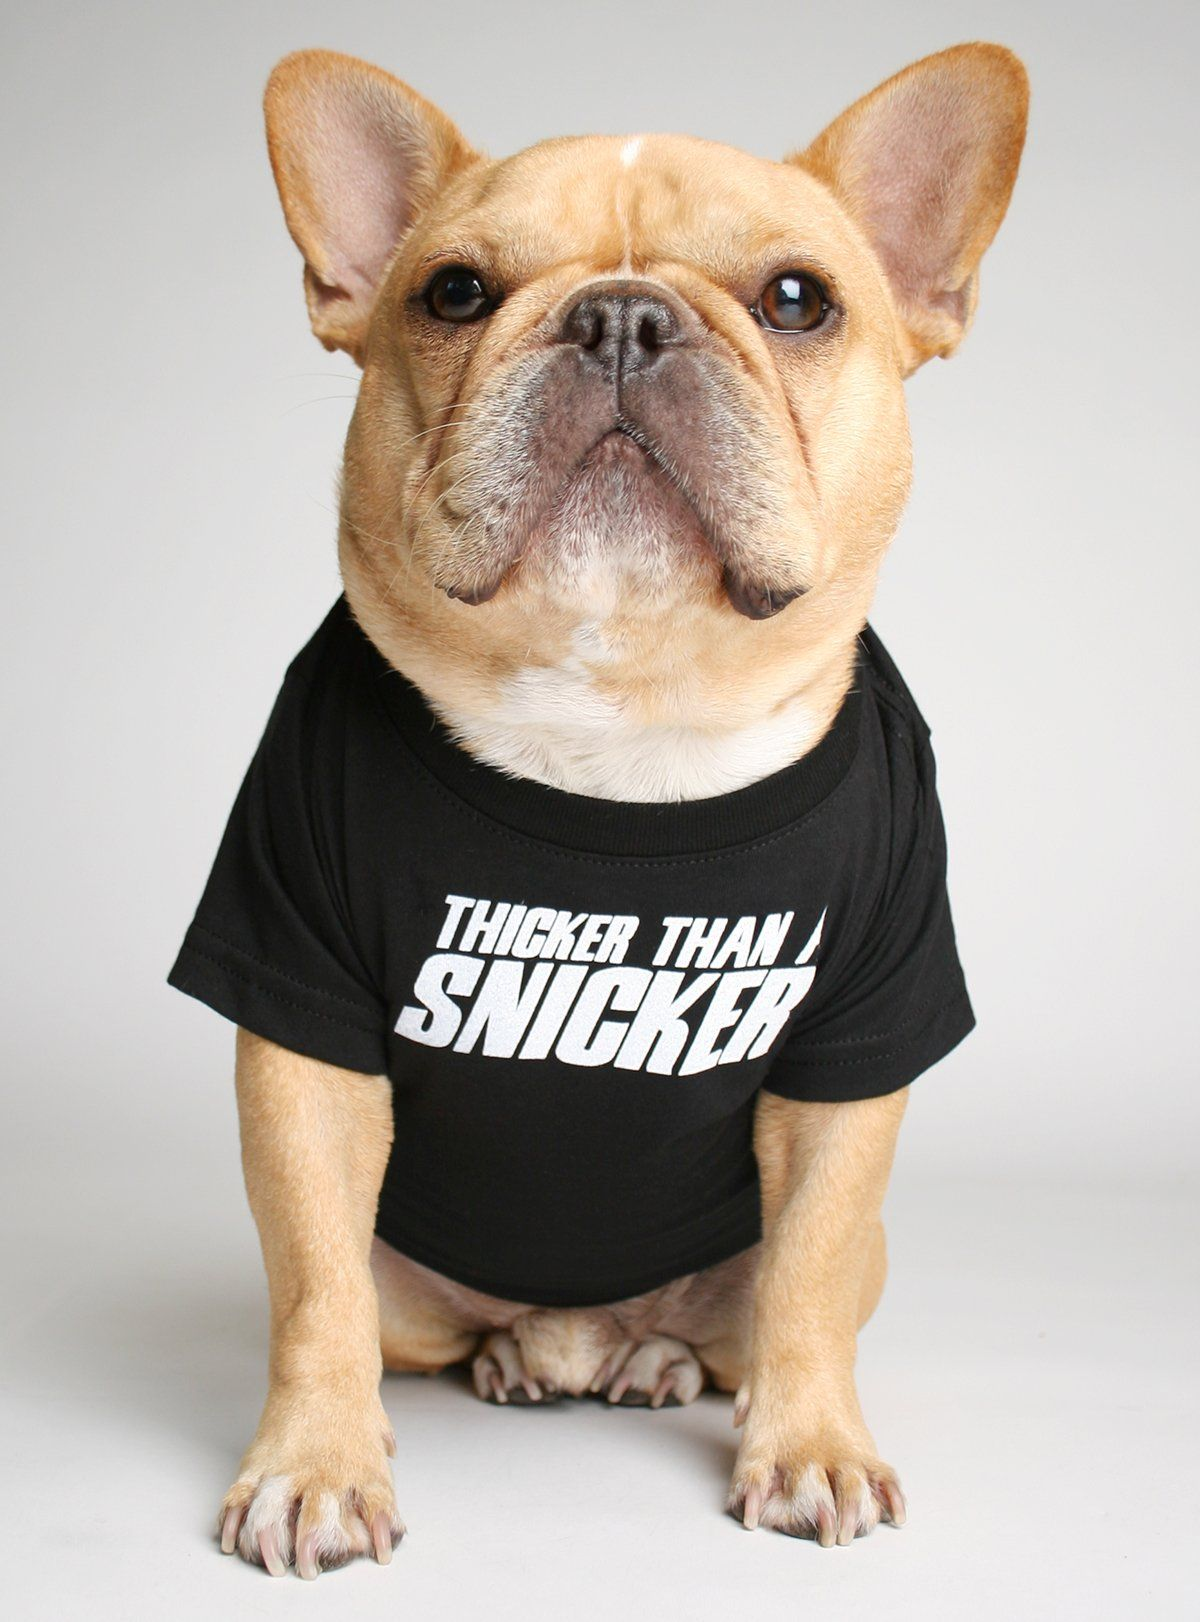 Thicker Than A Snicker Dog Tee Dog Shirt Baby Dogs French